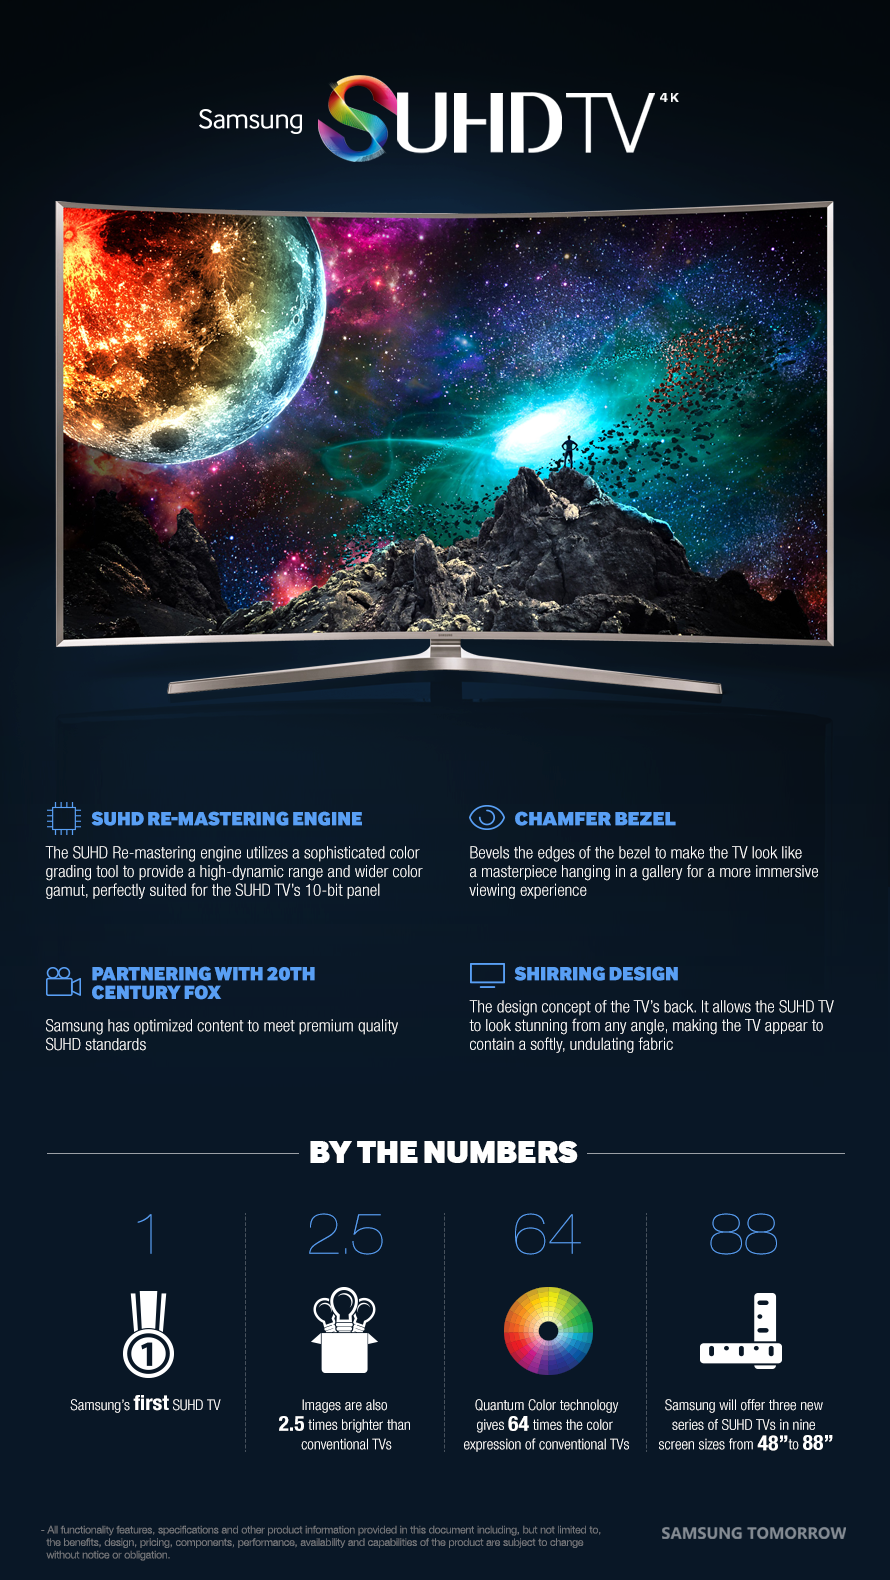 Samsung SUHD Quantum Dot TV by the numbers